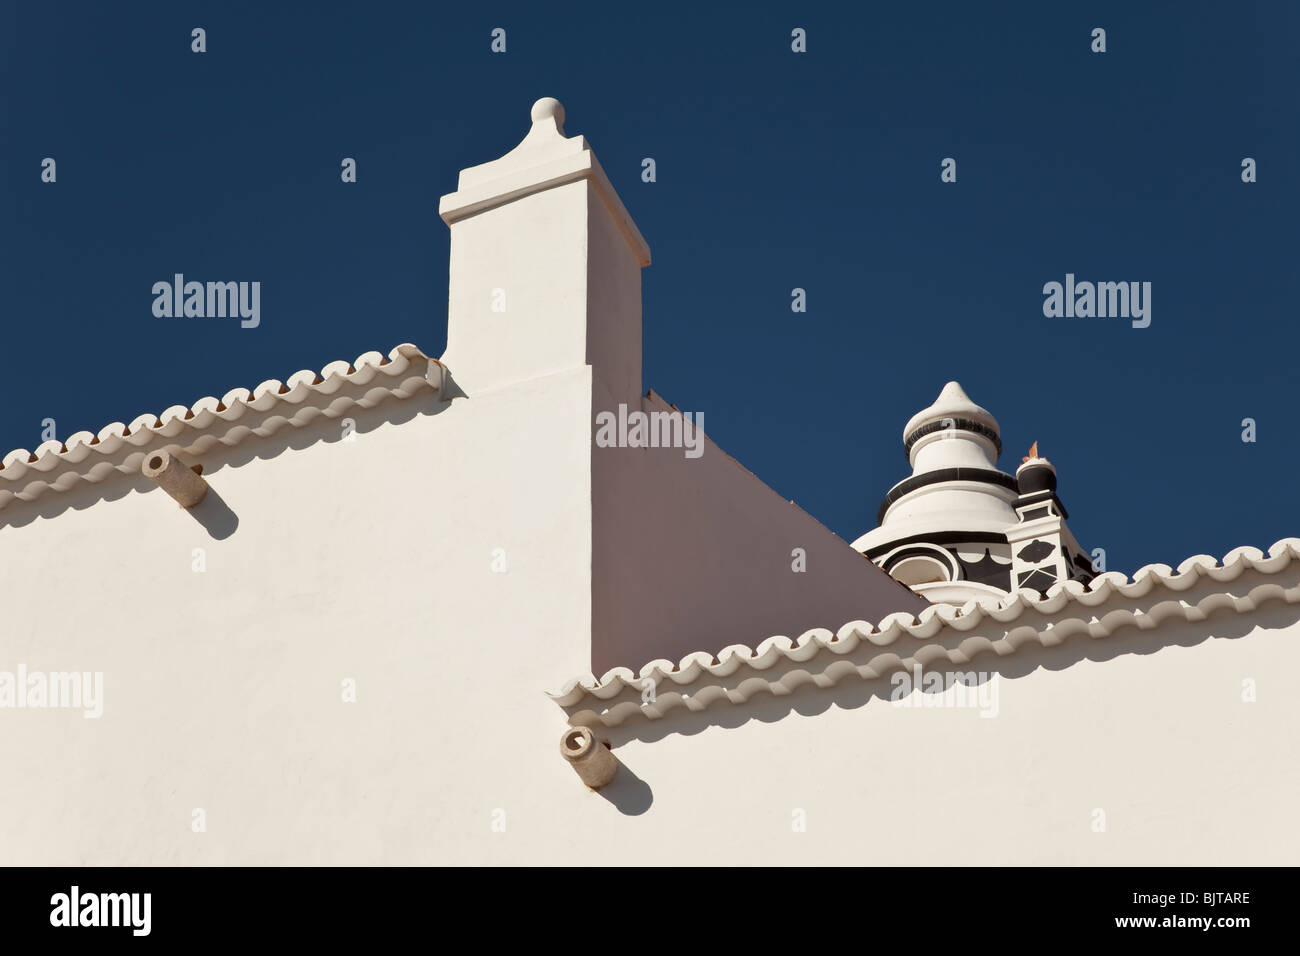 A house roof tower against a blue sky in the city of Lagos - Stock Image